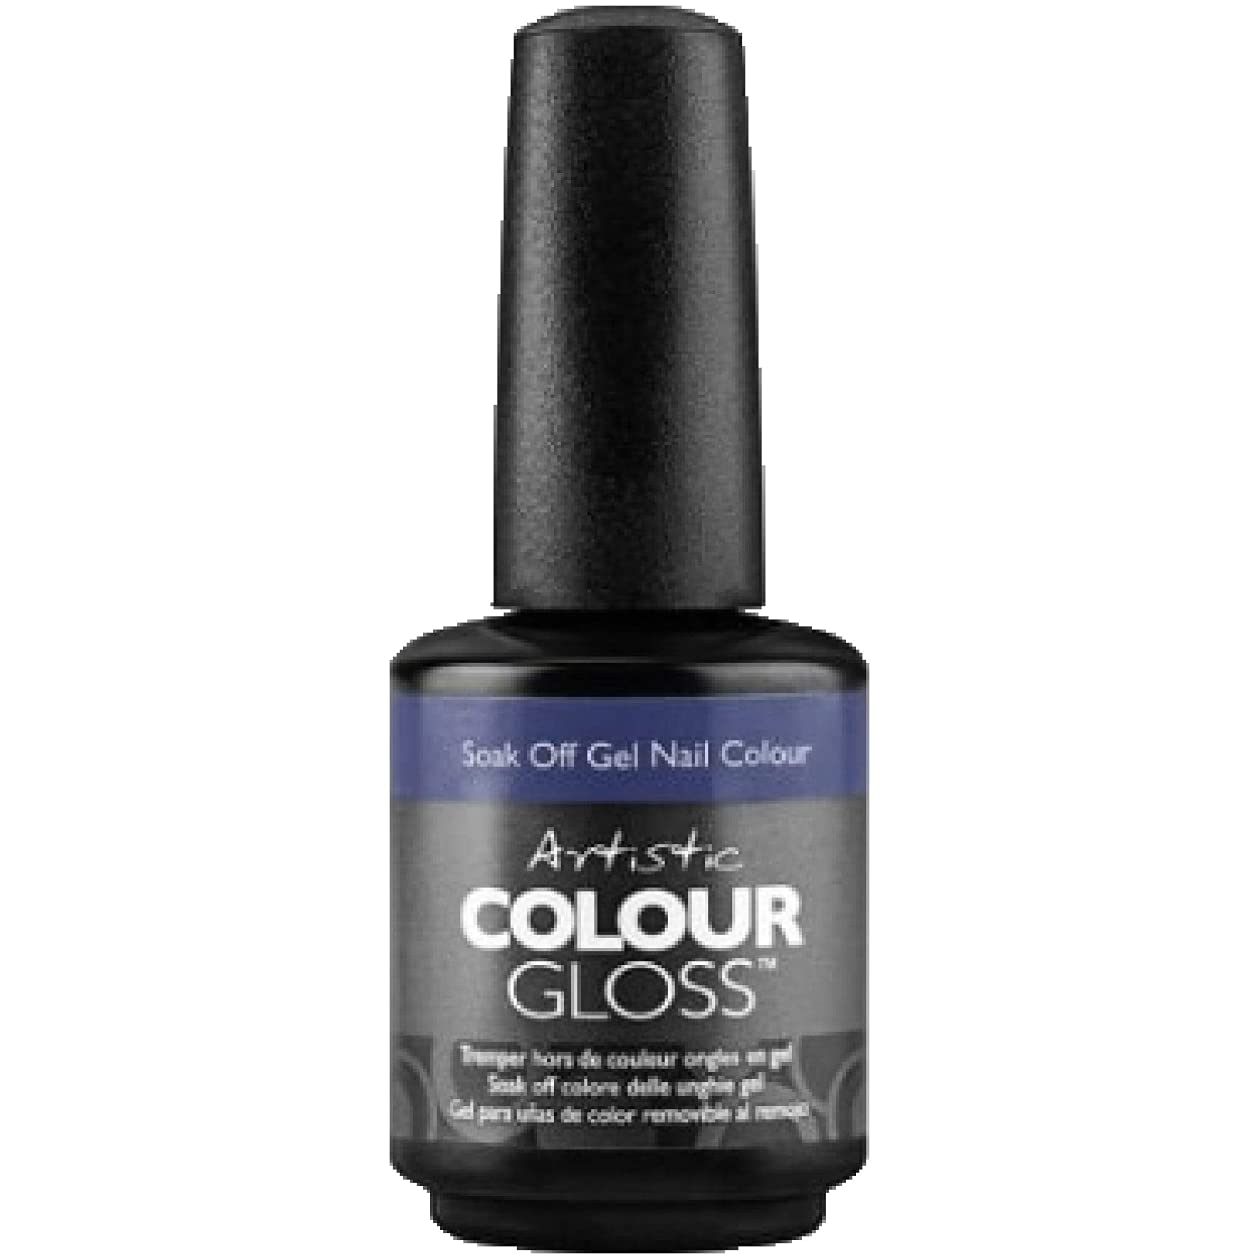 そよ風ジャンル悪因子Artistic Colour Gloss - War Party - 0.5oz/15ml